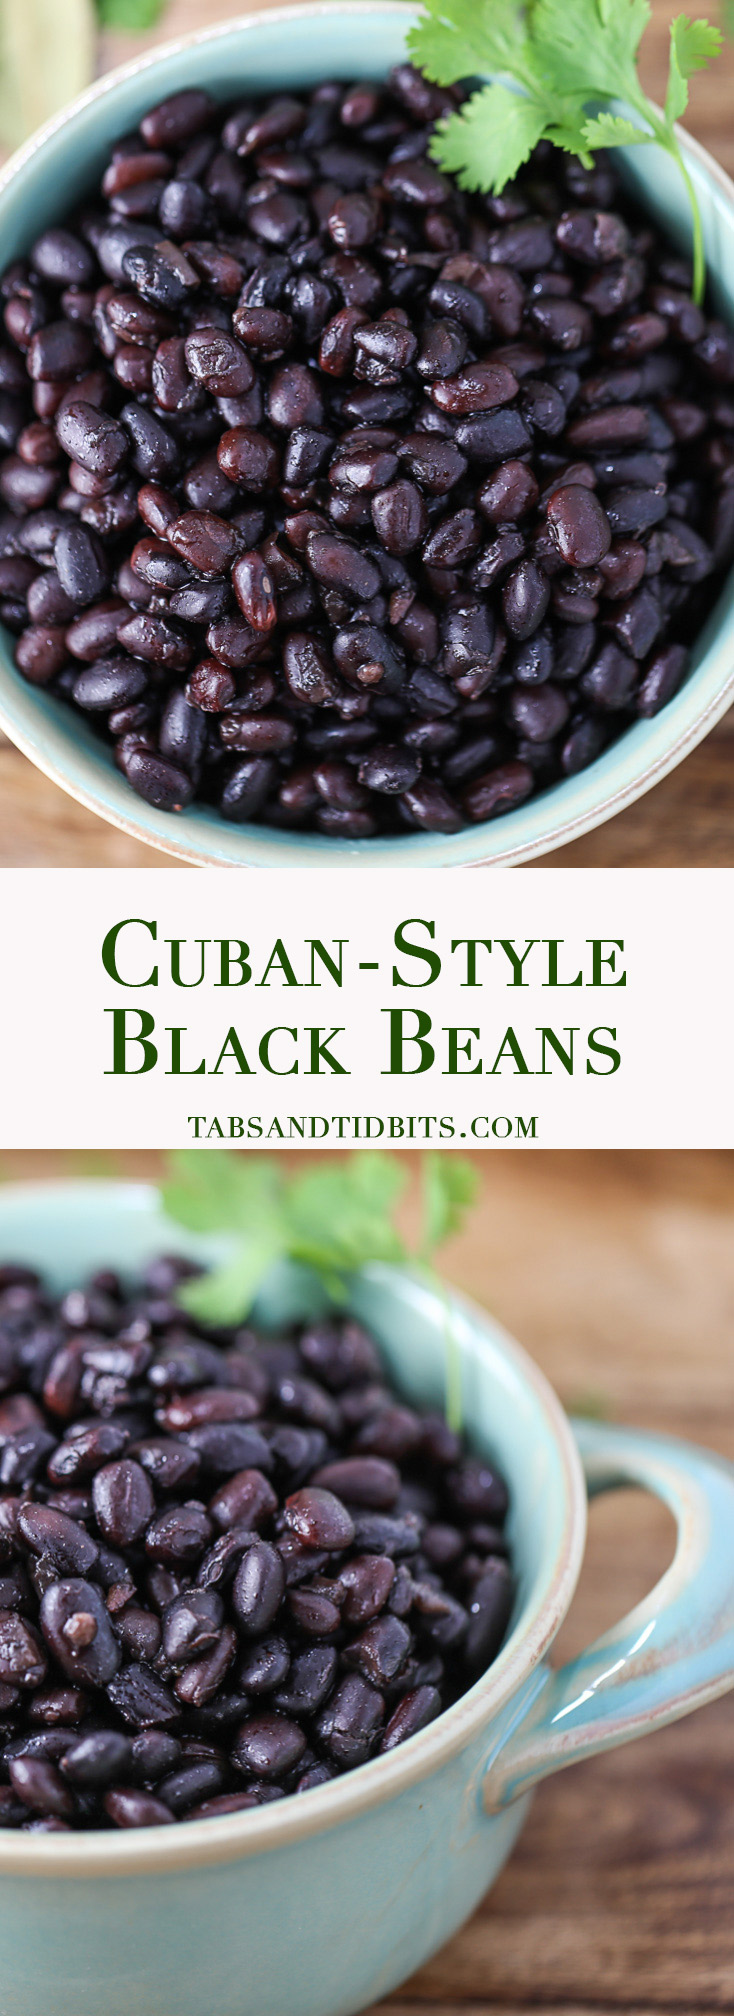 Cuban-Style Black Beans - Black beans infused with smoky cumin ...